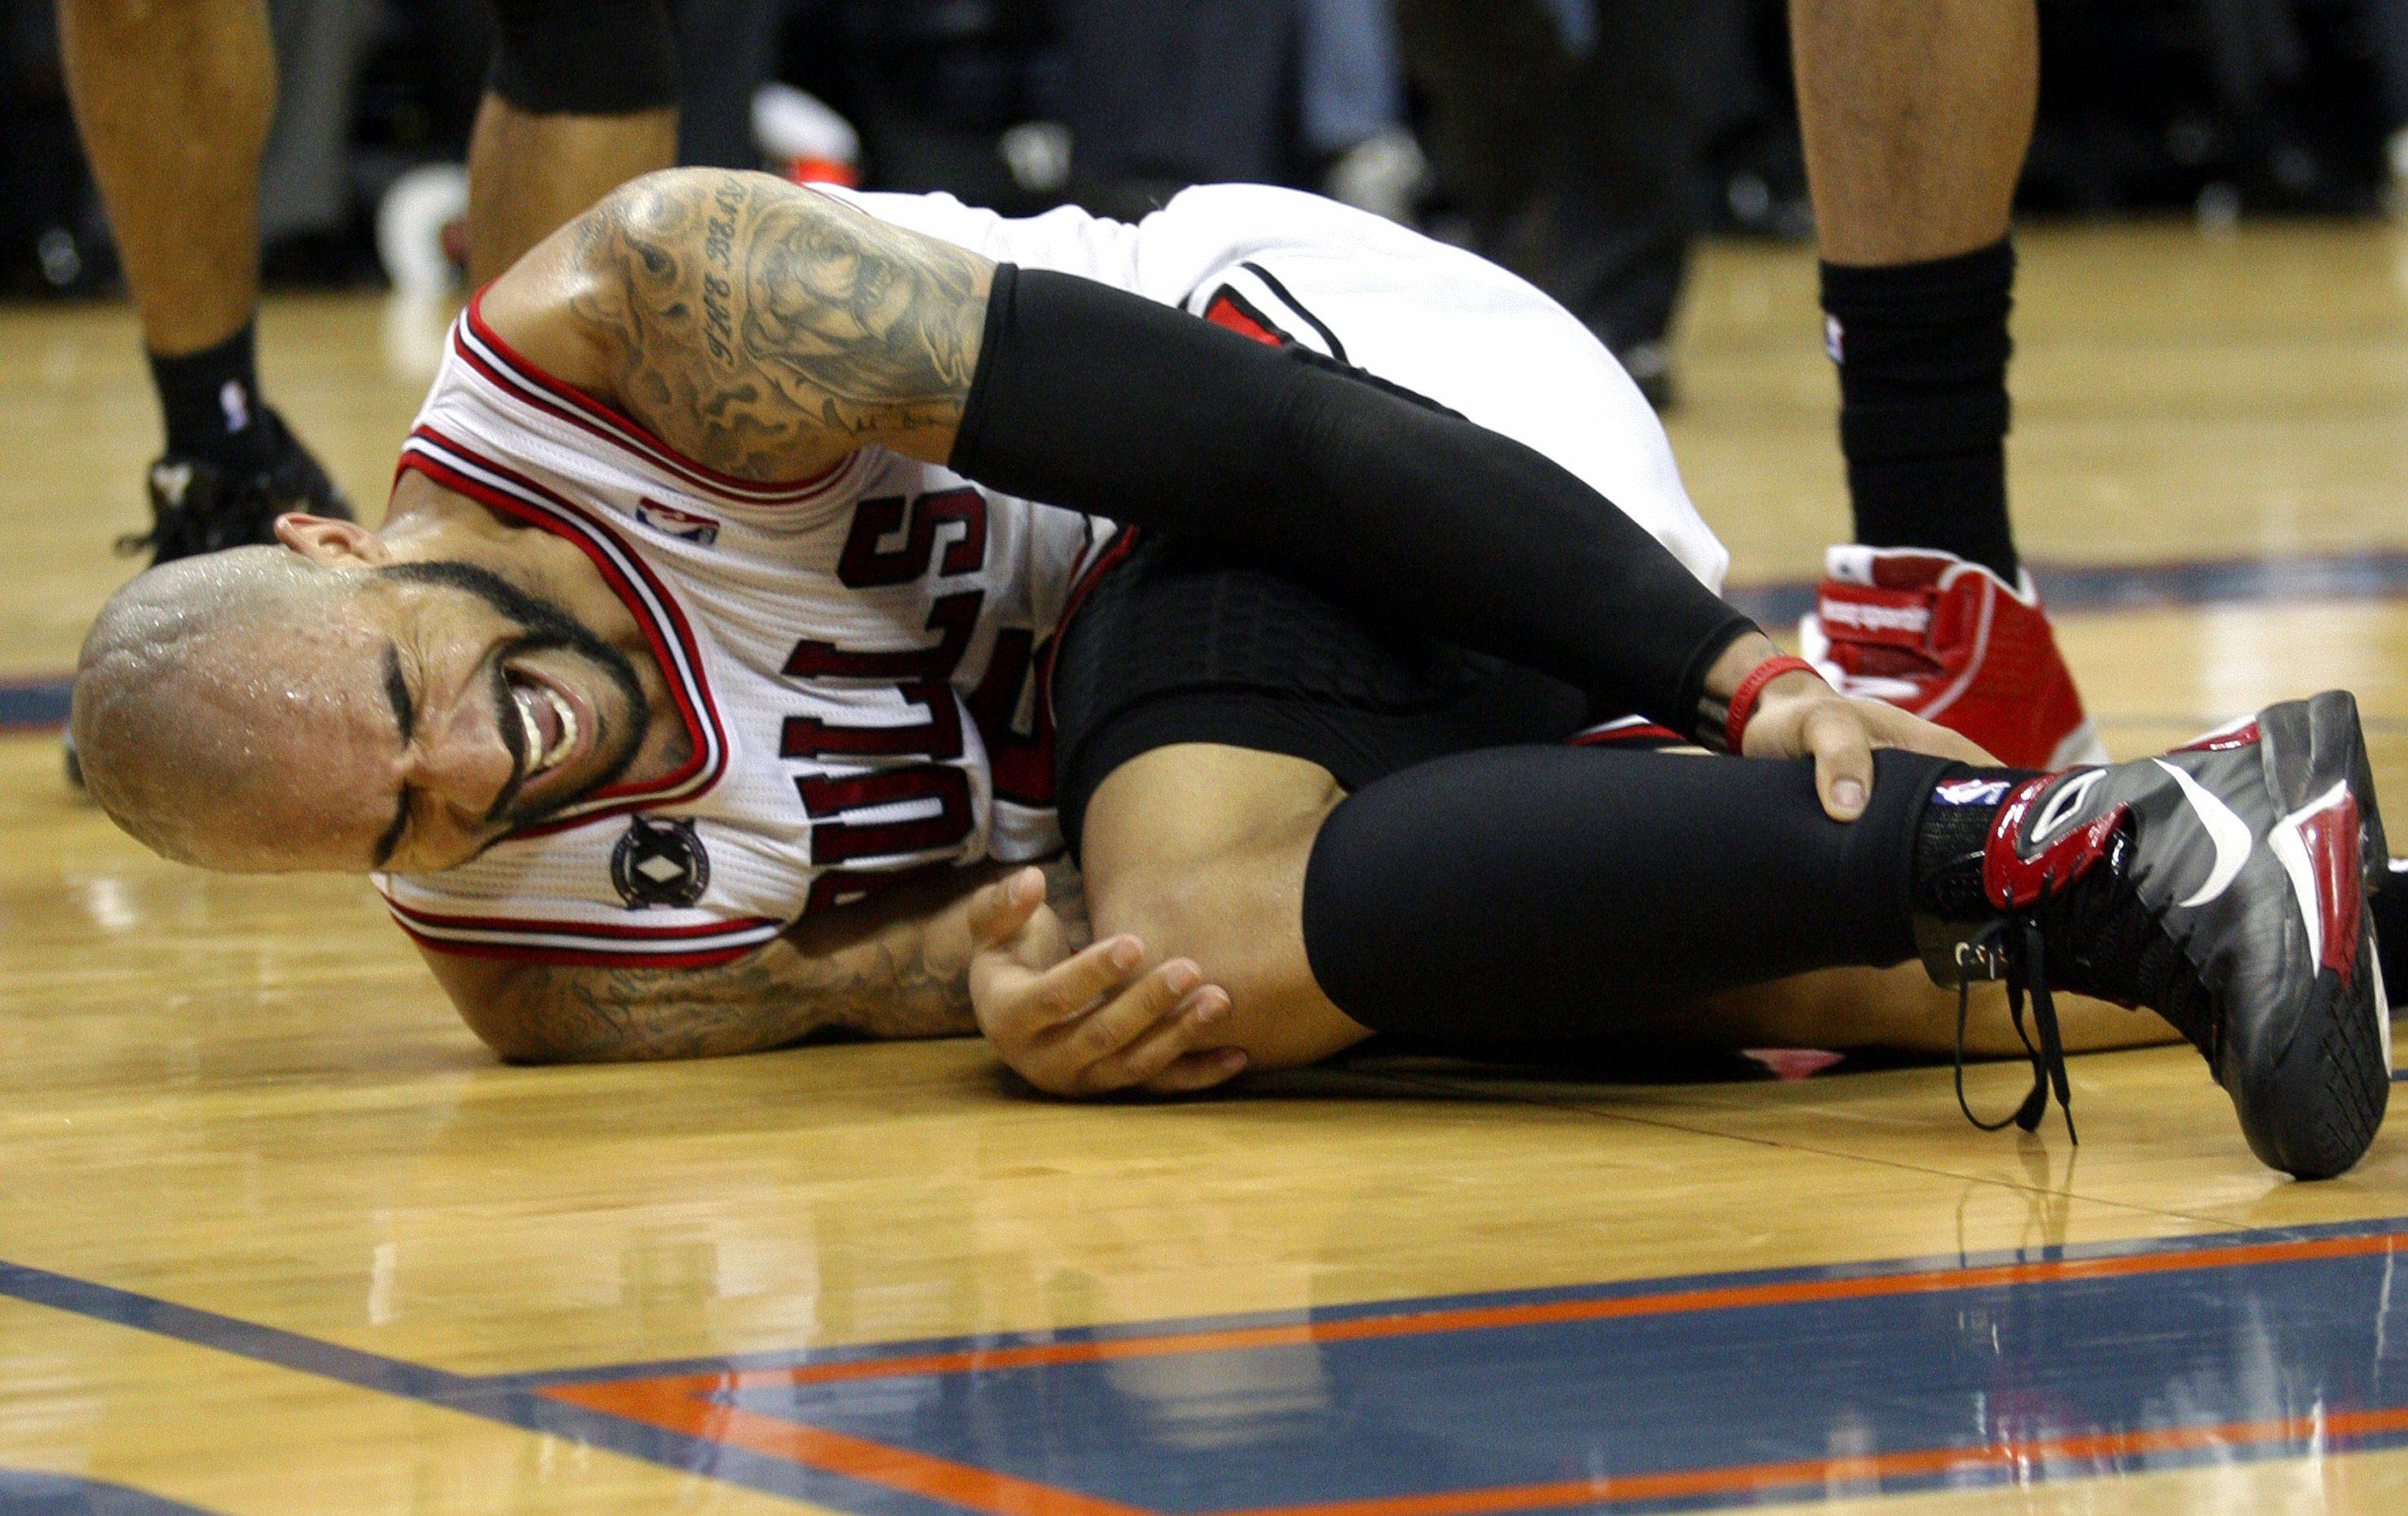 Chicago Bulls forward Carlos Boozer writhes in pain after getting injured during the second half of thel game against the Bobcats in Charlotte, N.C.